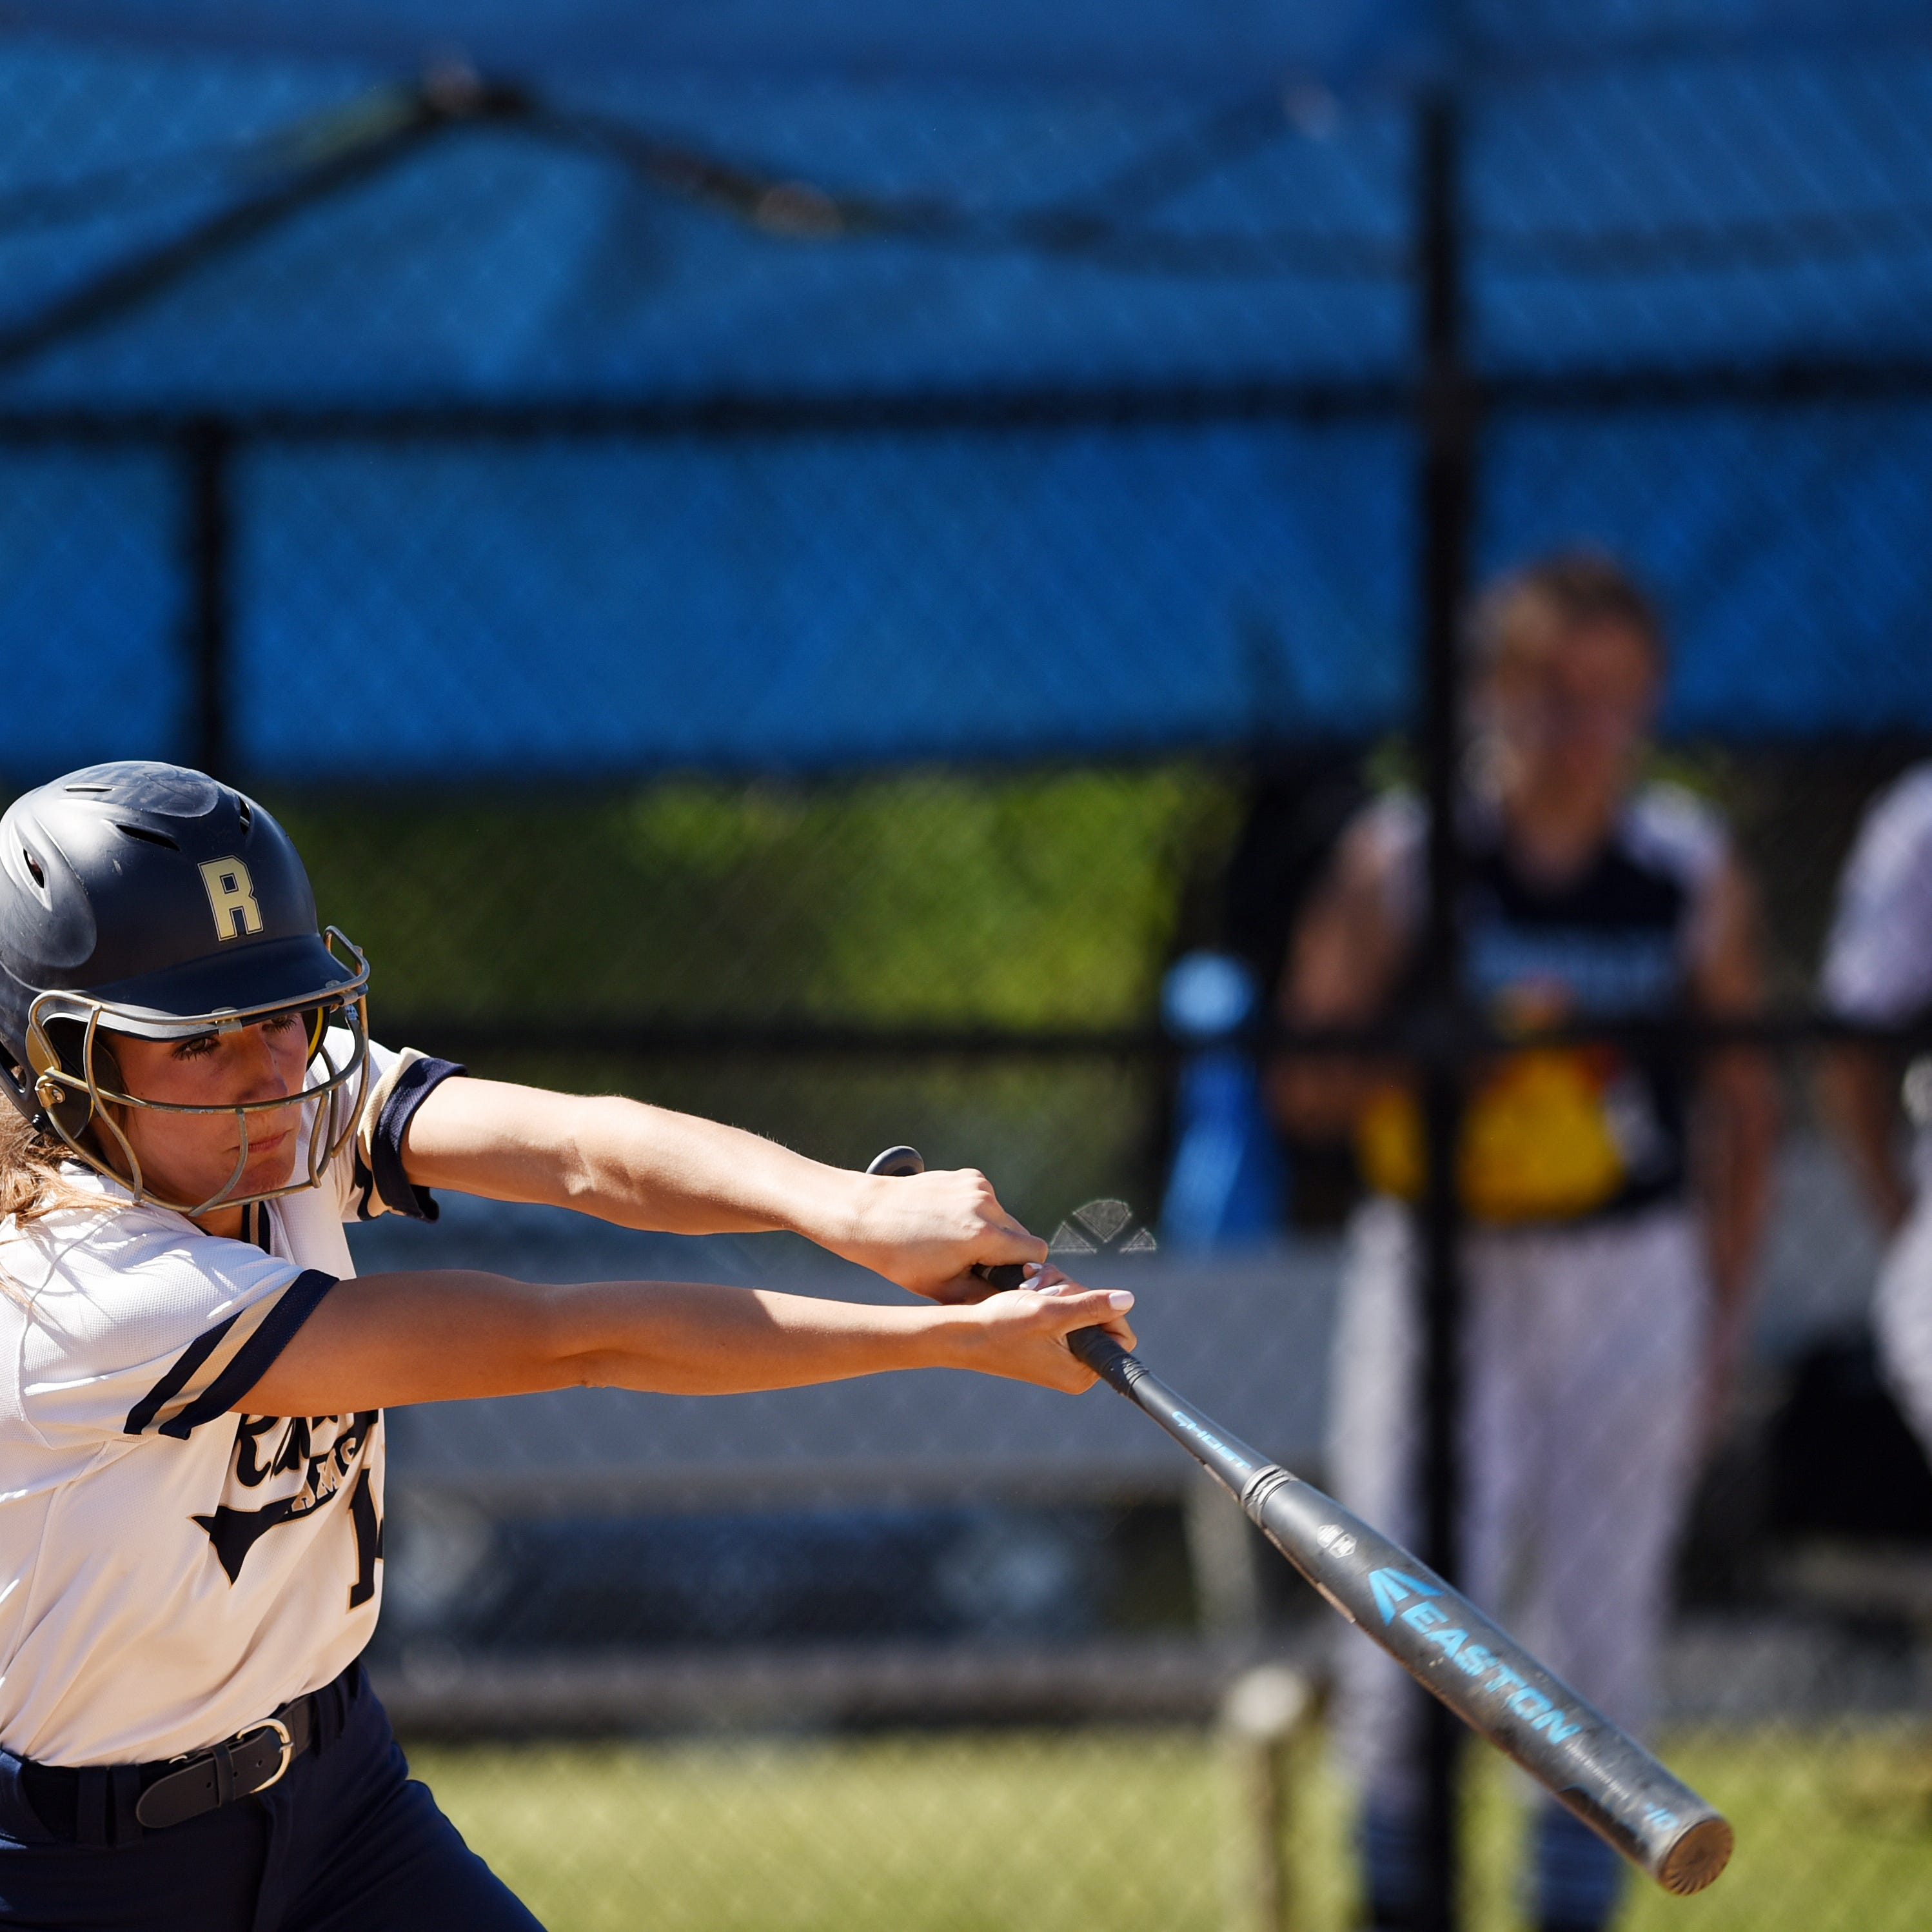 Softball: Preview and prediction for the Bergen County final